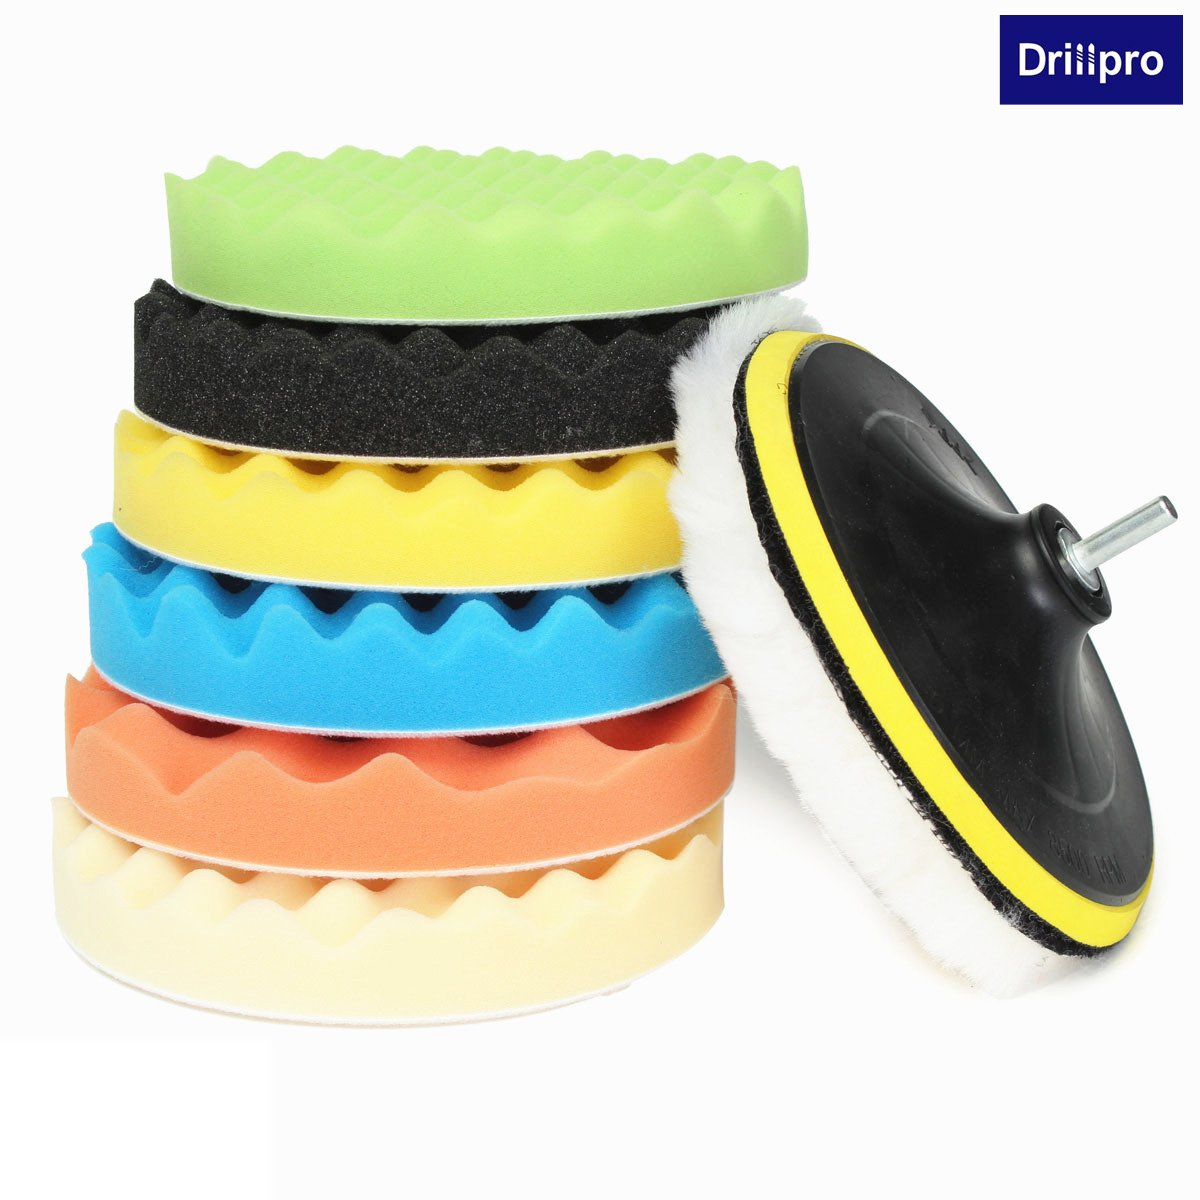 8Pcs 7 Inch Car Polishing Waxing Buffing Pad Kit Compound Sponge Foam For Compound Auto Car Polisher With Drill